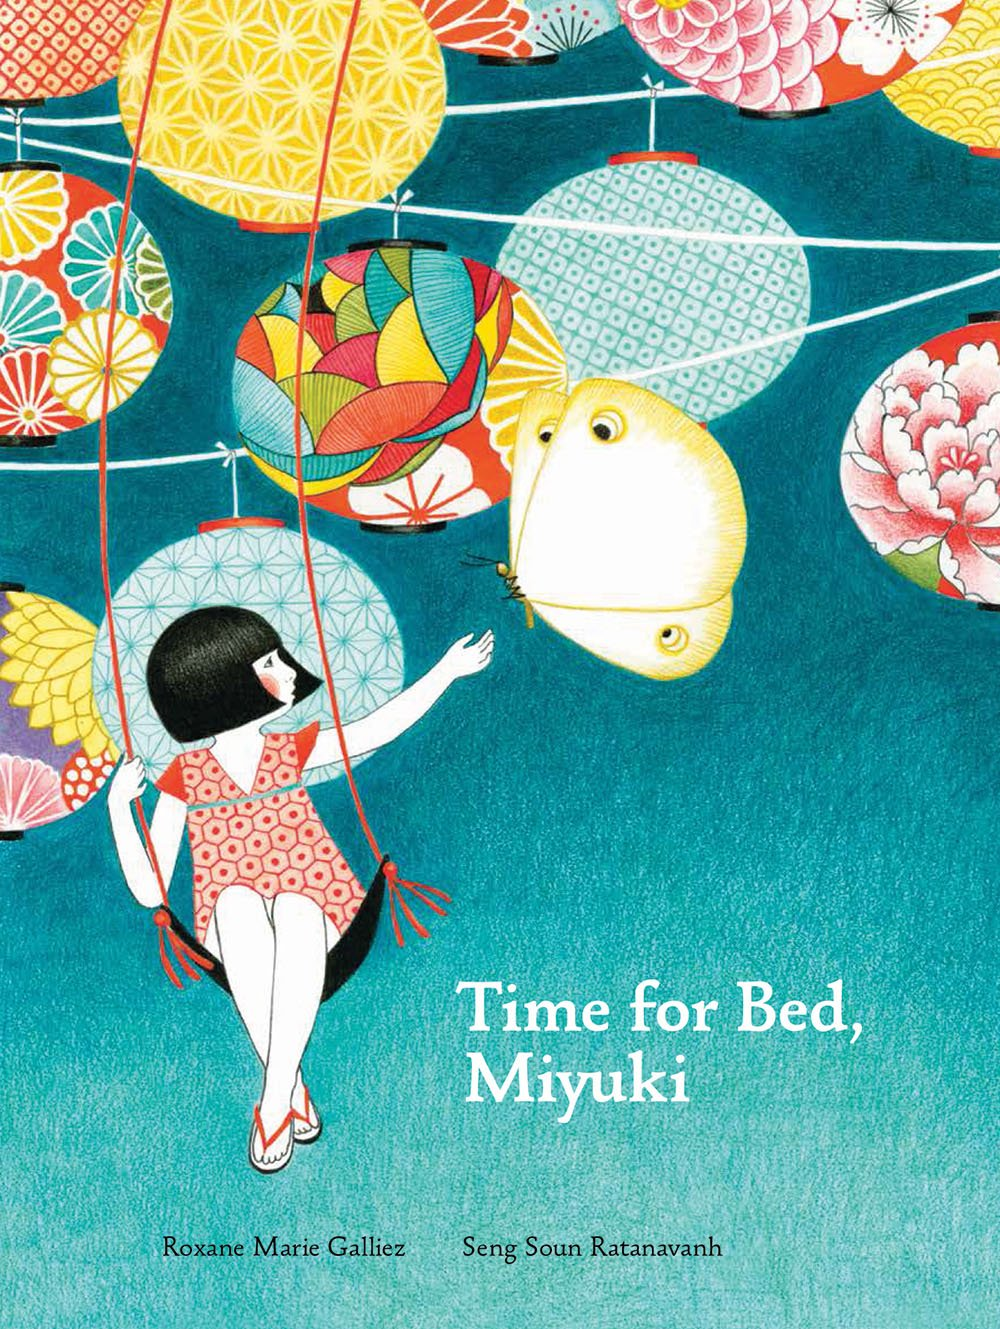 Time for Bed, Miyuki: Galliez, Roxane Marie, Ratanavanh, Seng Soun:  9781616897055: Amazon.com: Books